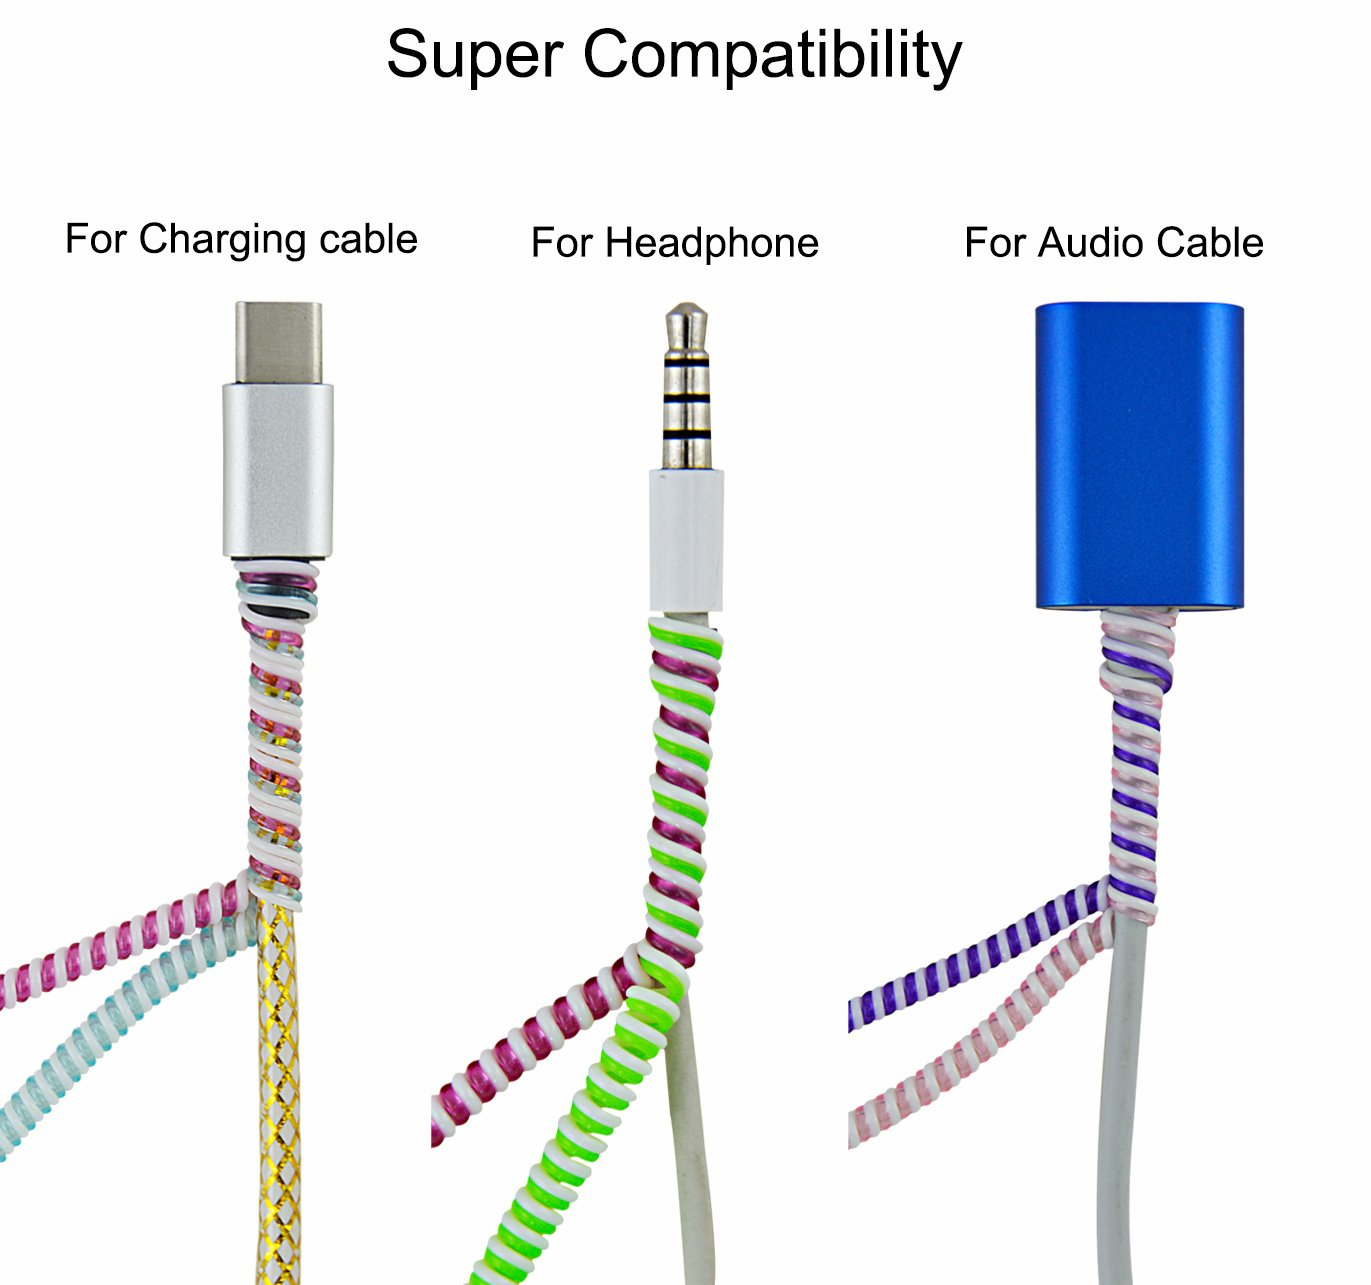 Amazon.com: Rancco Wire Protectors Headphone Cable Saver, 8 Pcs 50cm ...